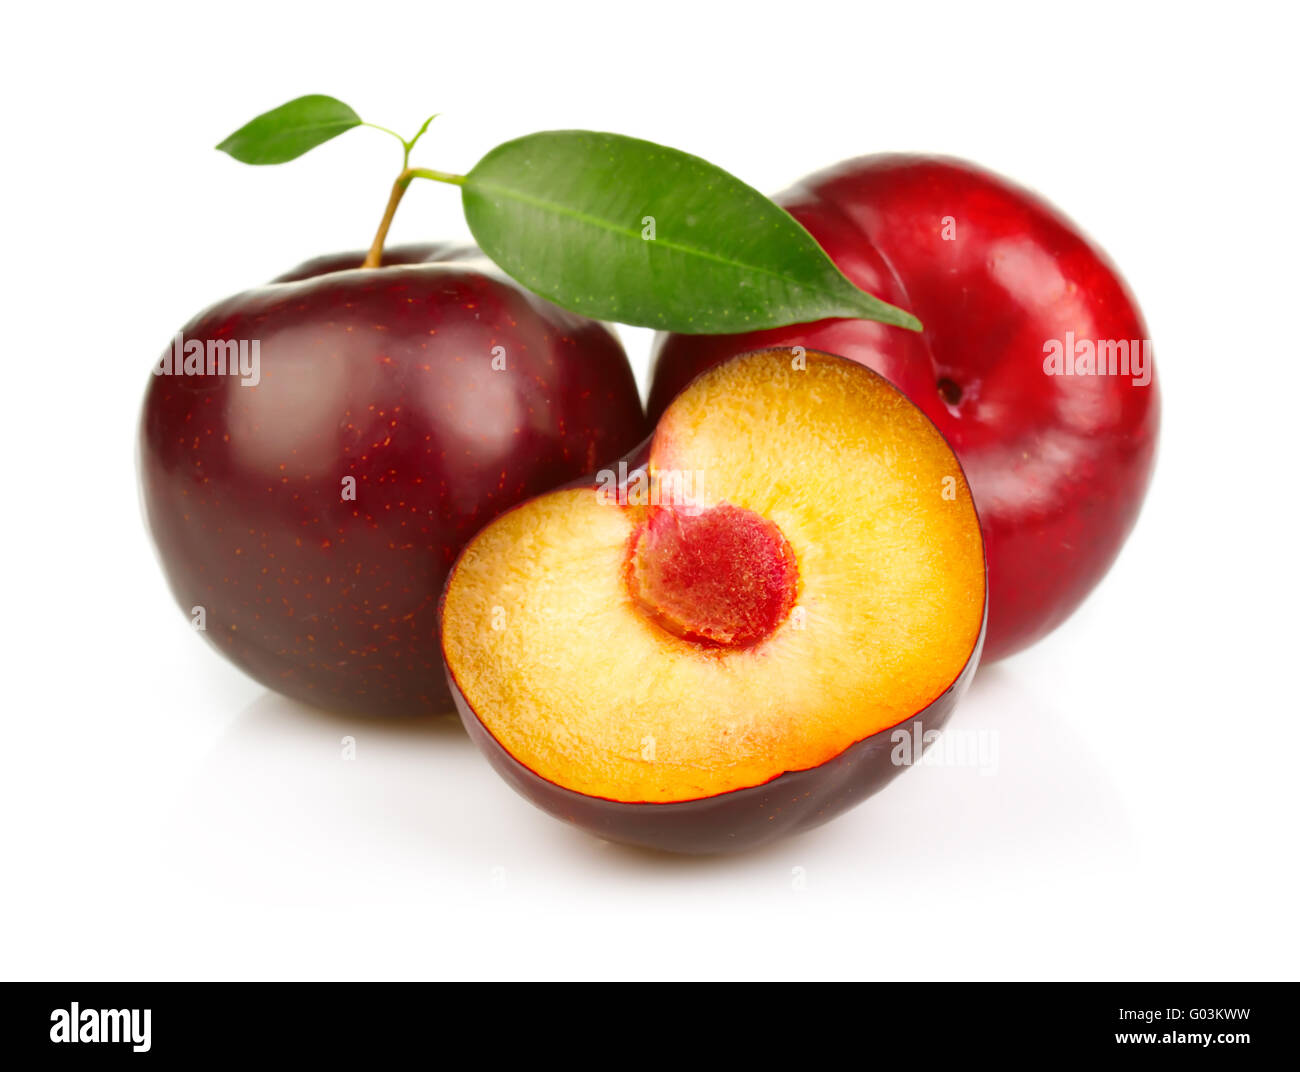 Ripe plums fruit with slices isolated on white - Stock Image